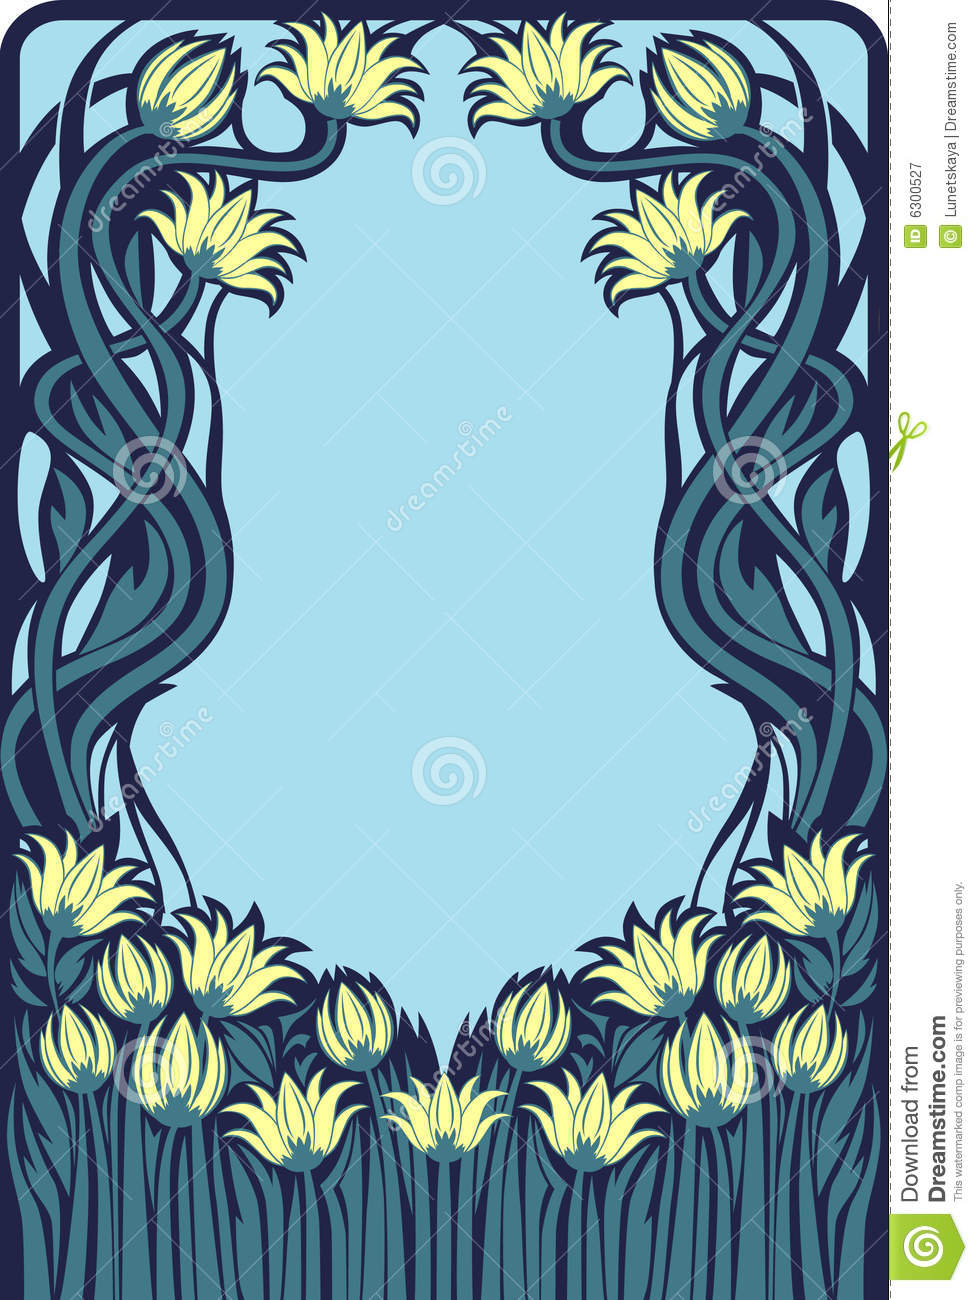 Art Deco Floral Frame Royalty Free Stock Photography Image 6300527